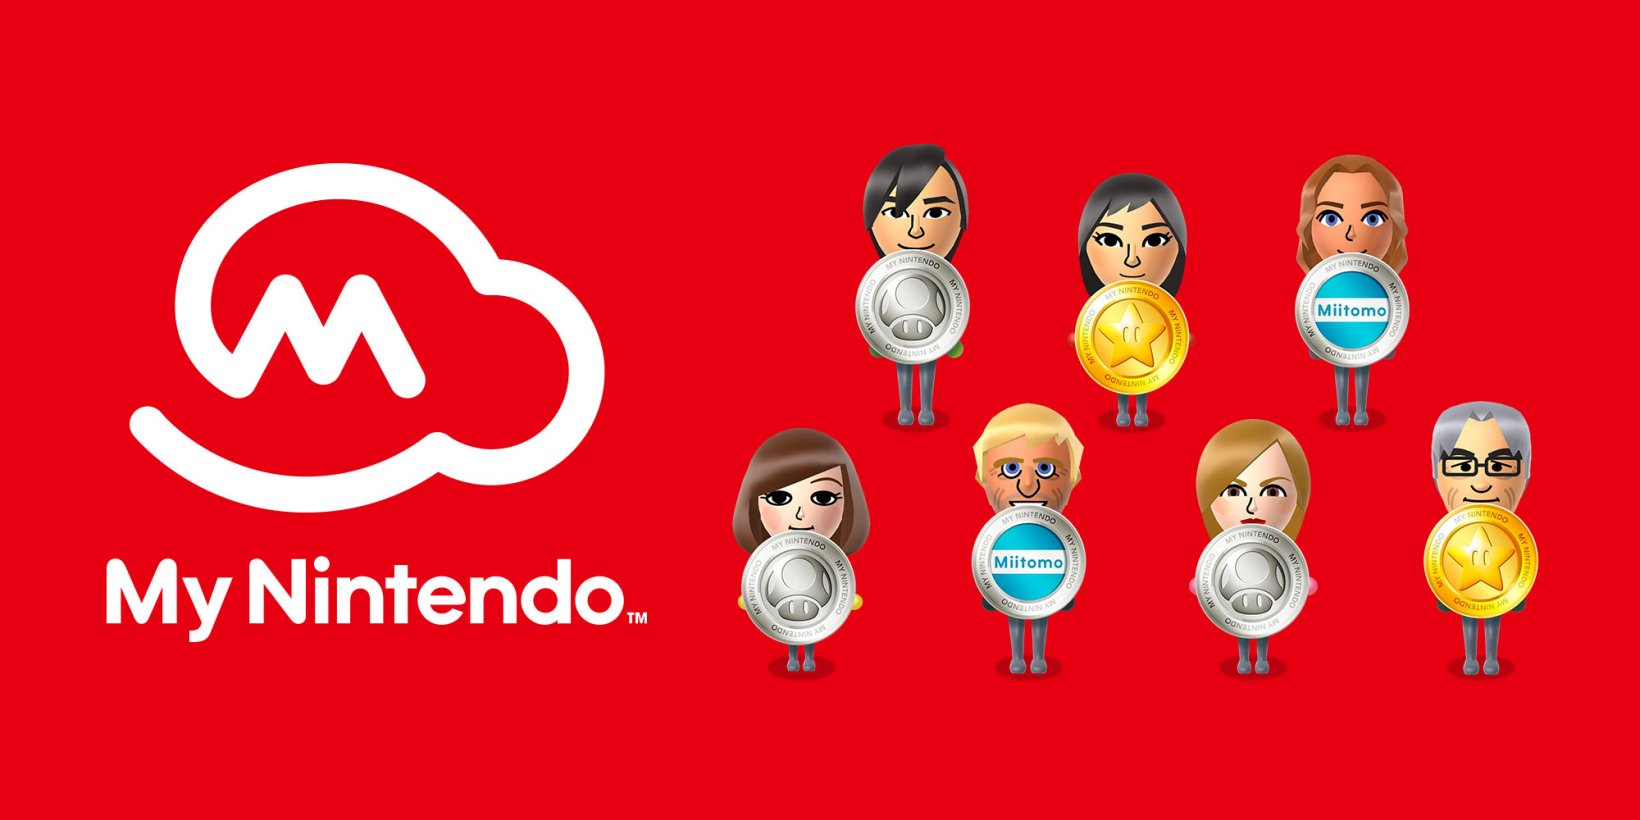 Get your Switch Online subscription for free with your My Nintendo Gold Points